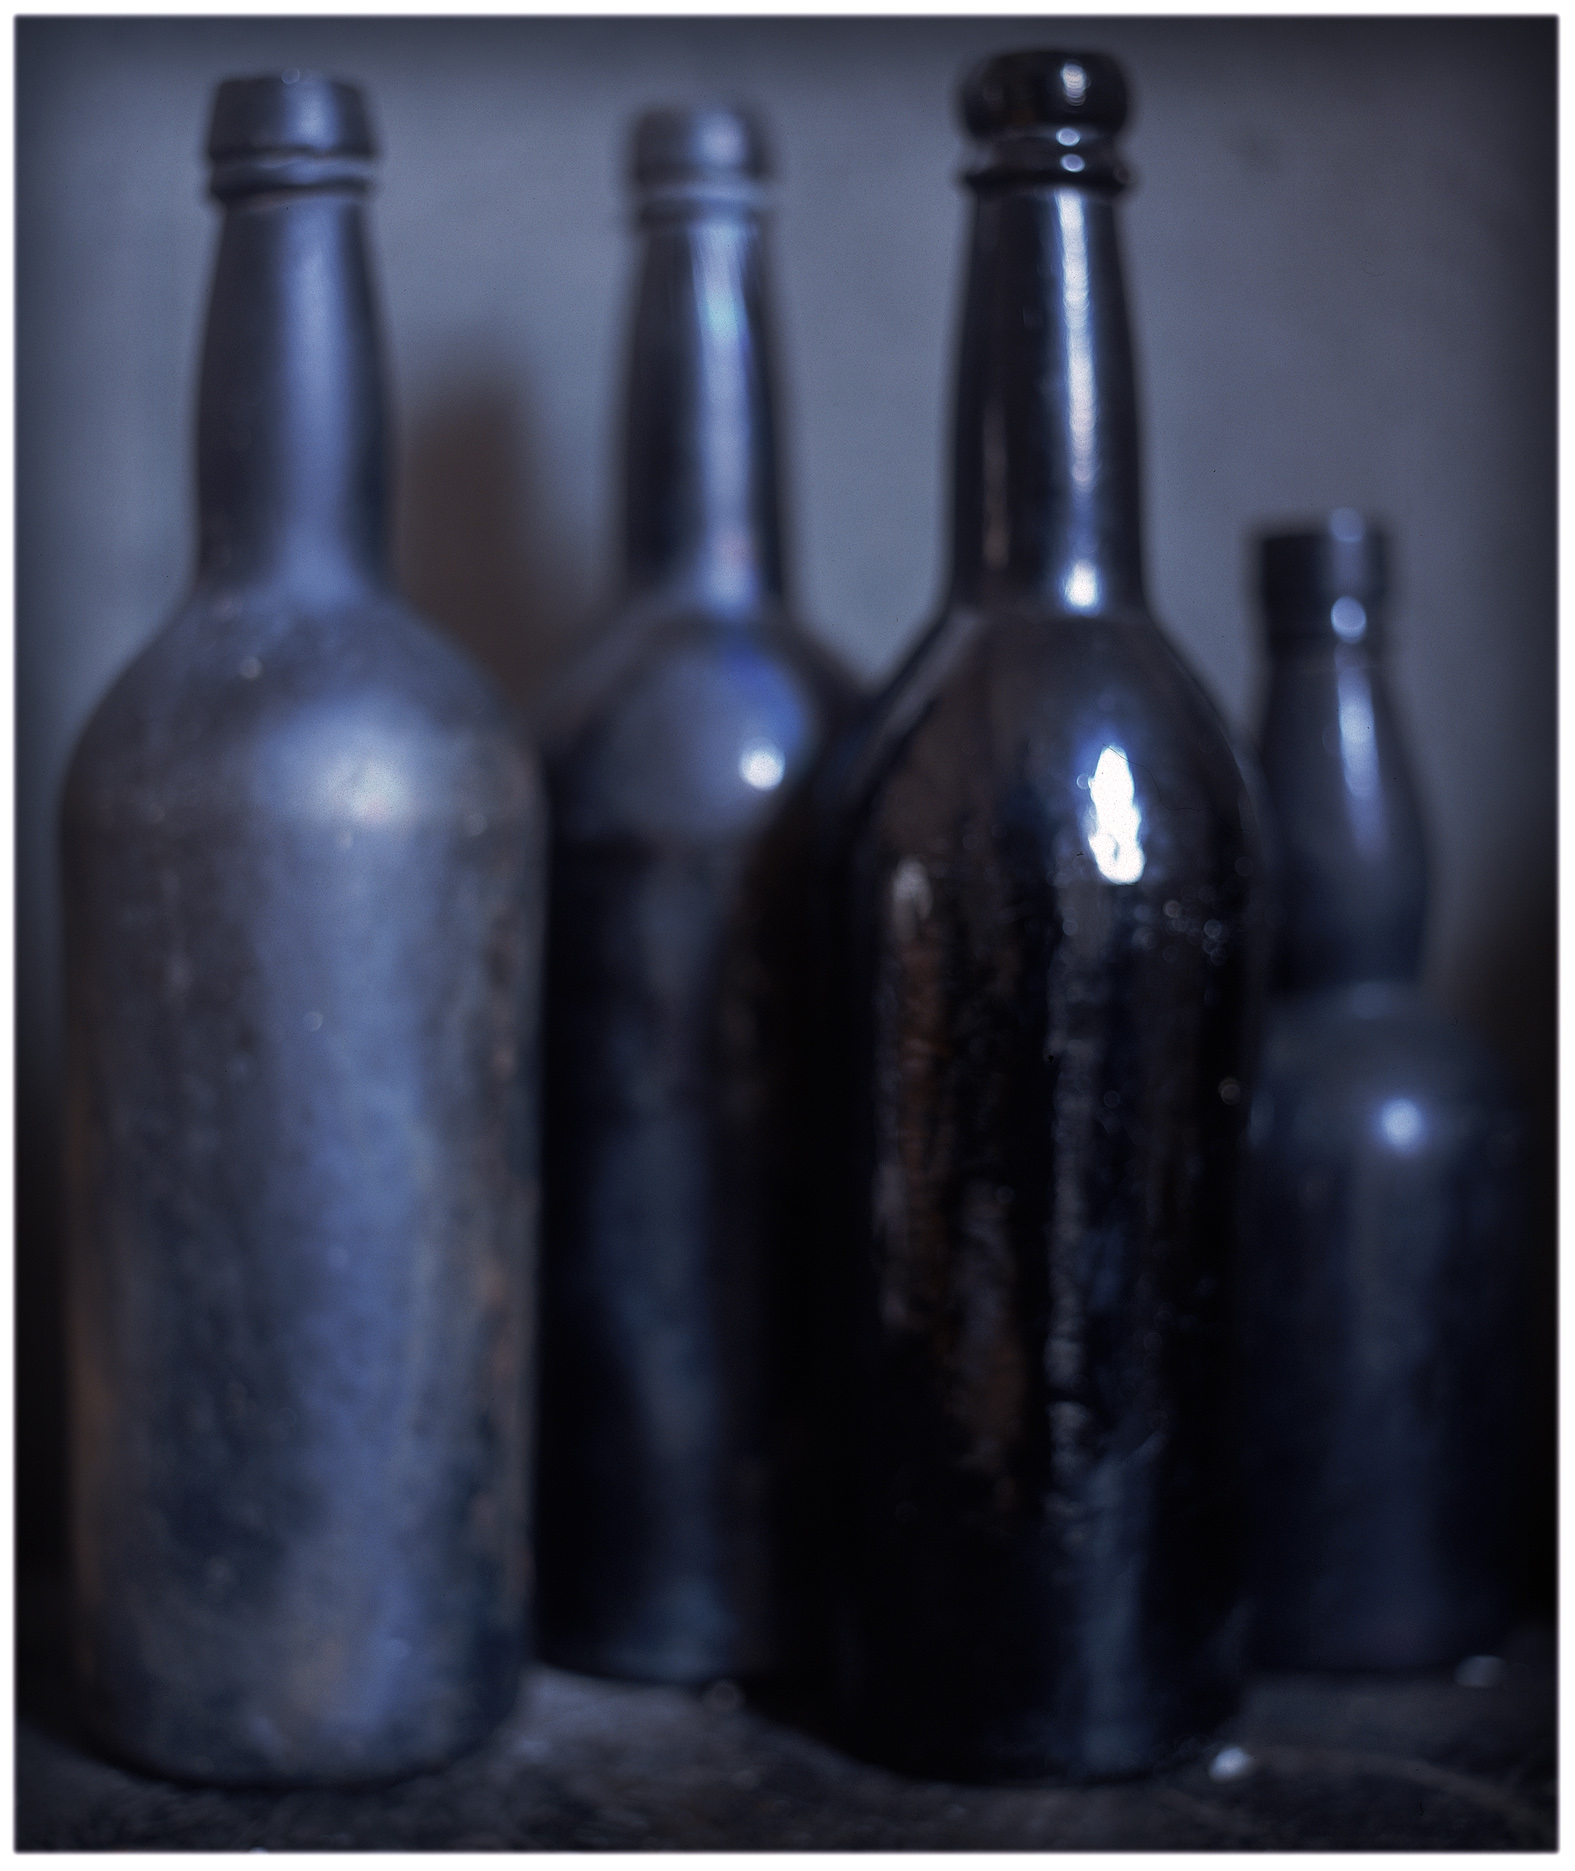 Craigie Horsfiled - Four Bottles, Blue, 2003 - 2008 - courtesy Galleria Monica De Cardenas, Milano